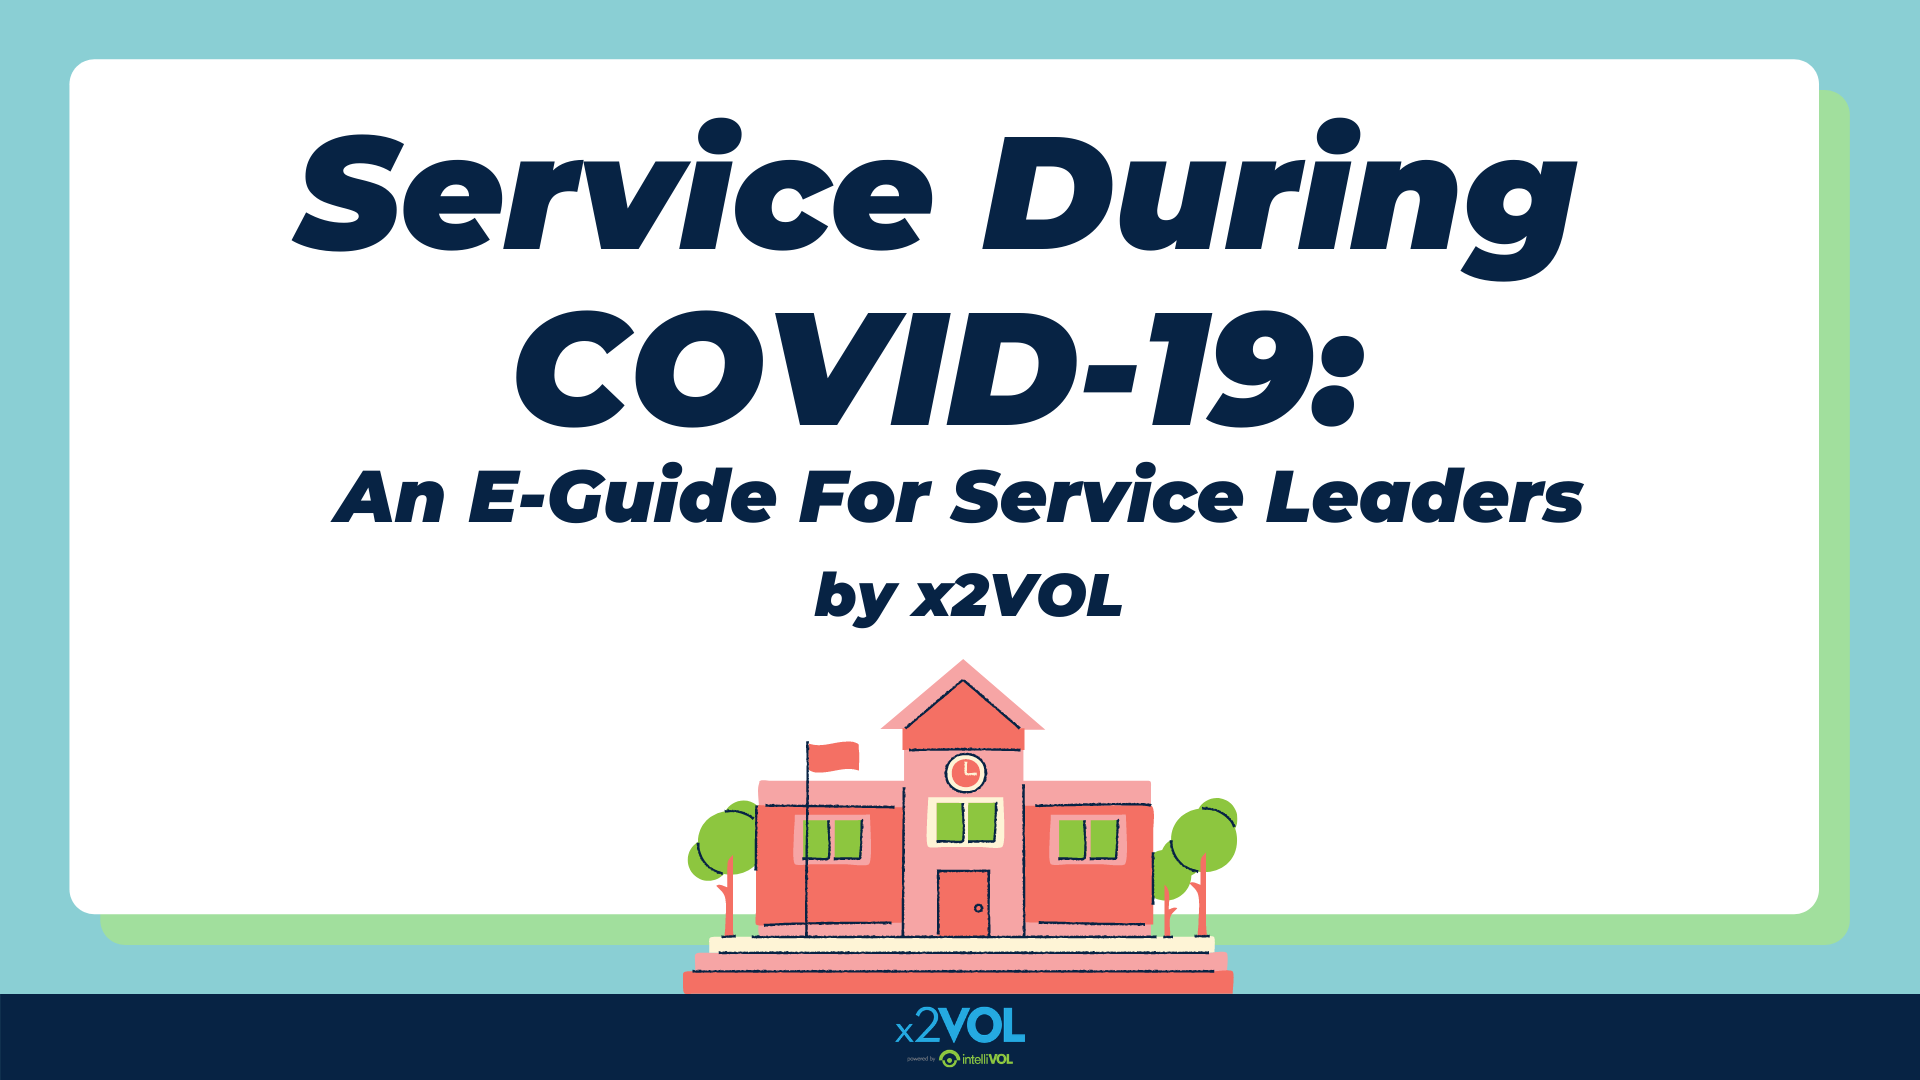 Service During COVID-19: An E-Guide for Service Leaders